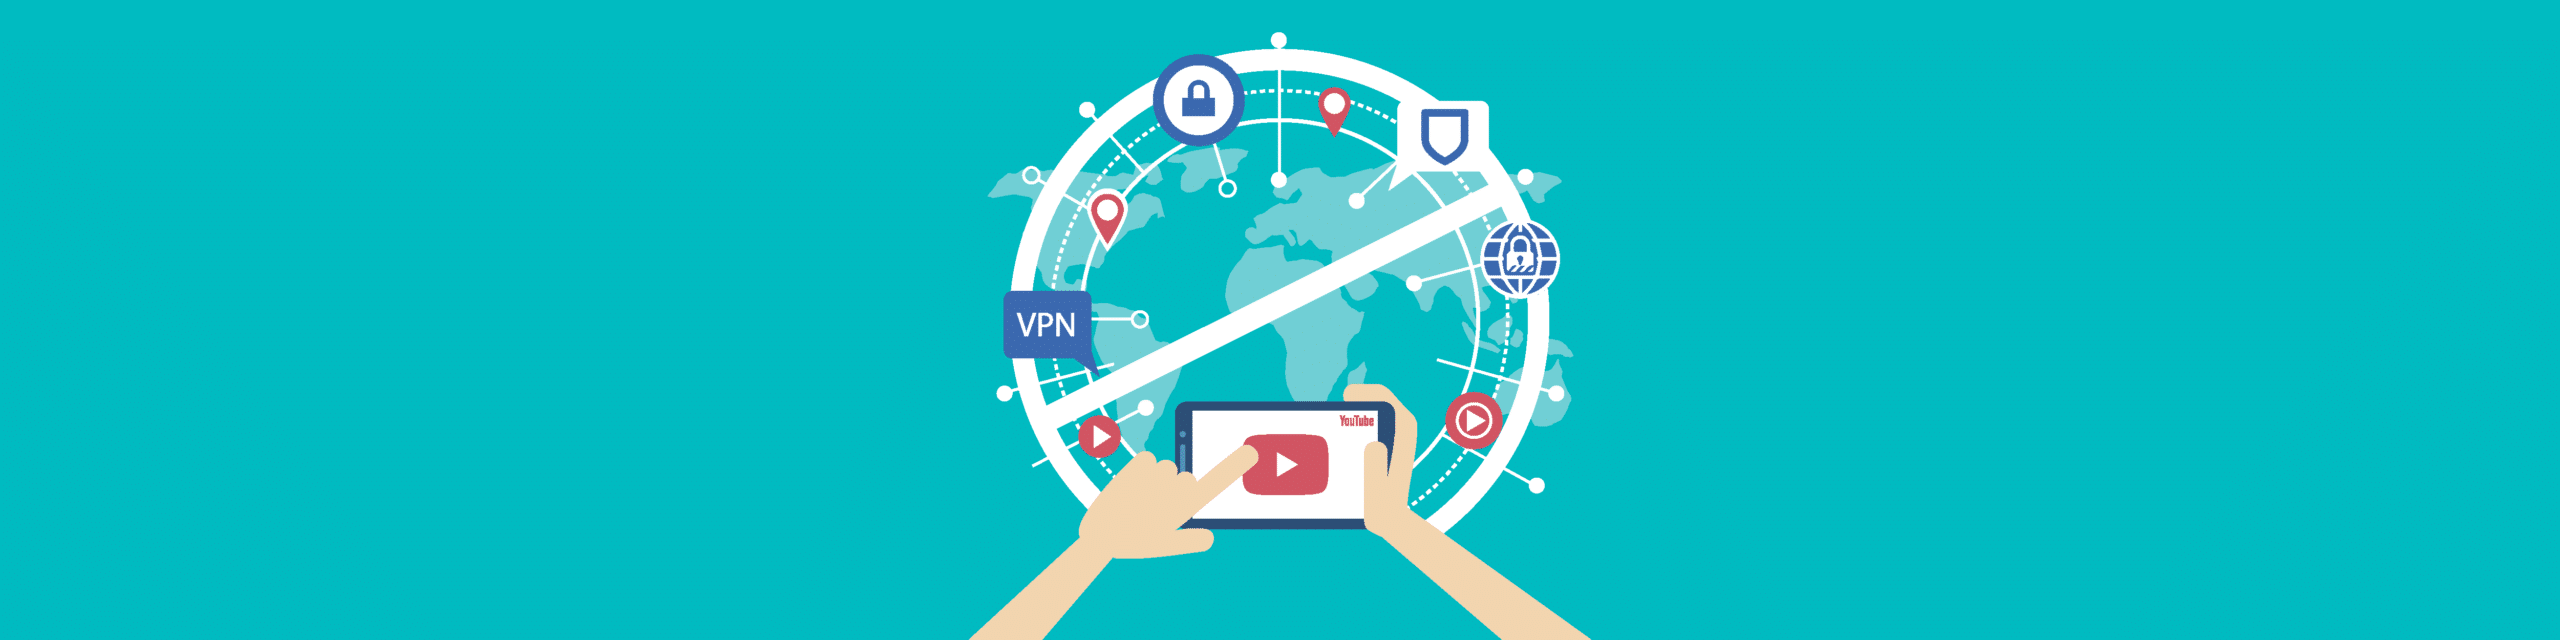 Unblock Geo-Restricted YouTube Videos with the Help of a VPN